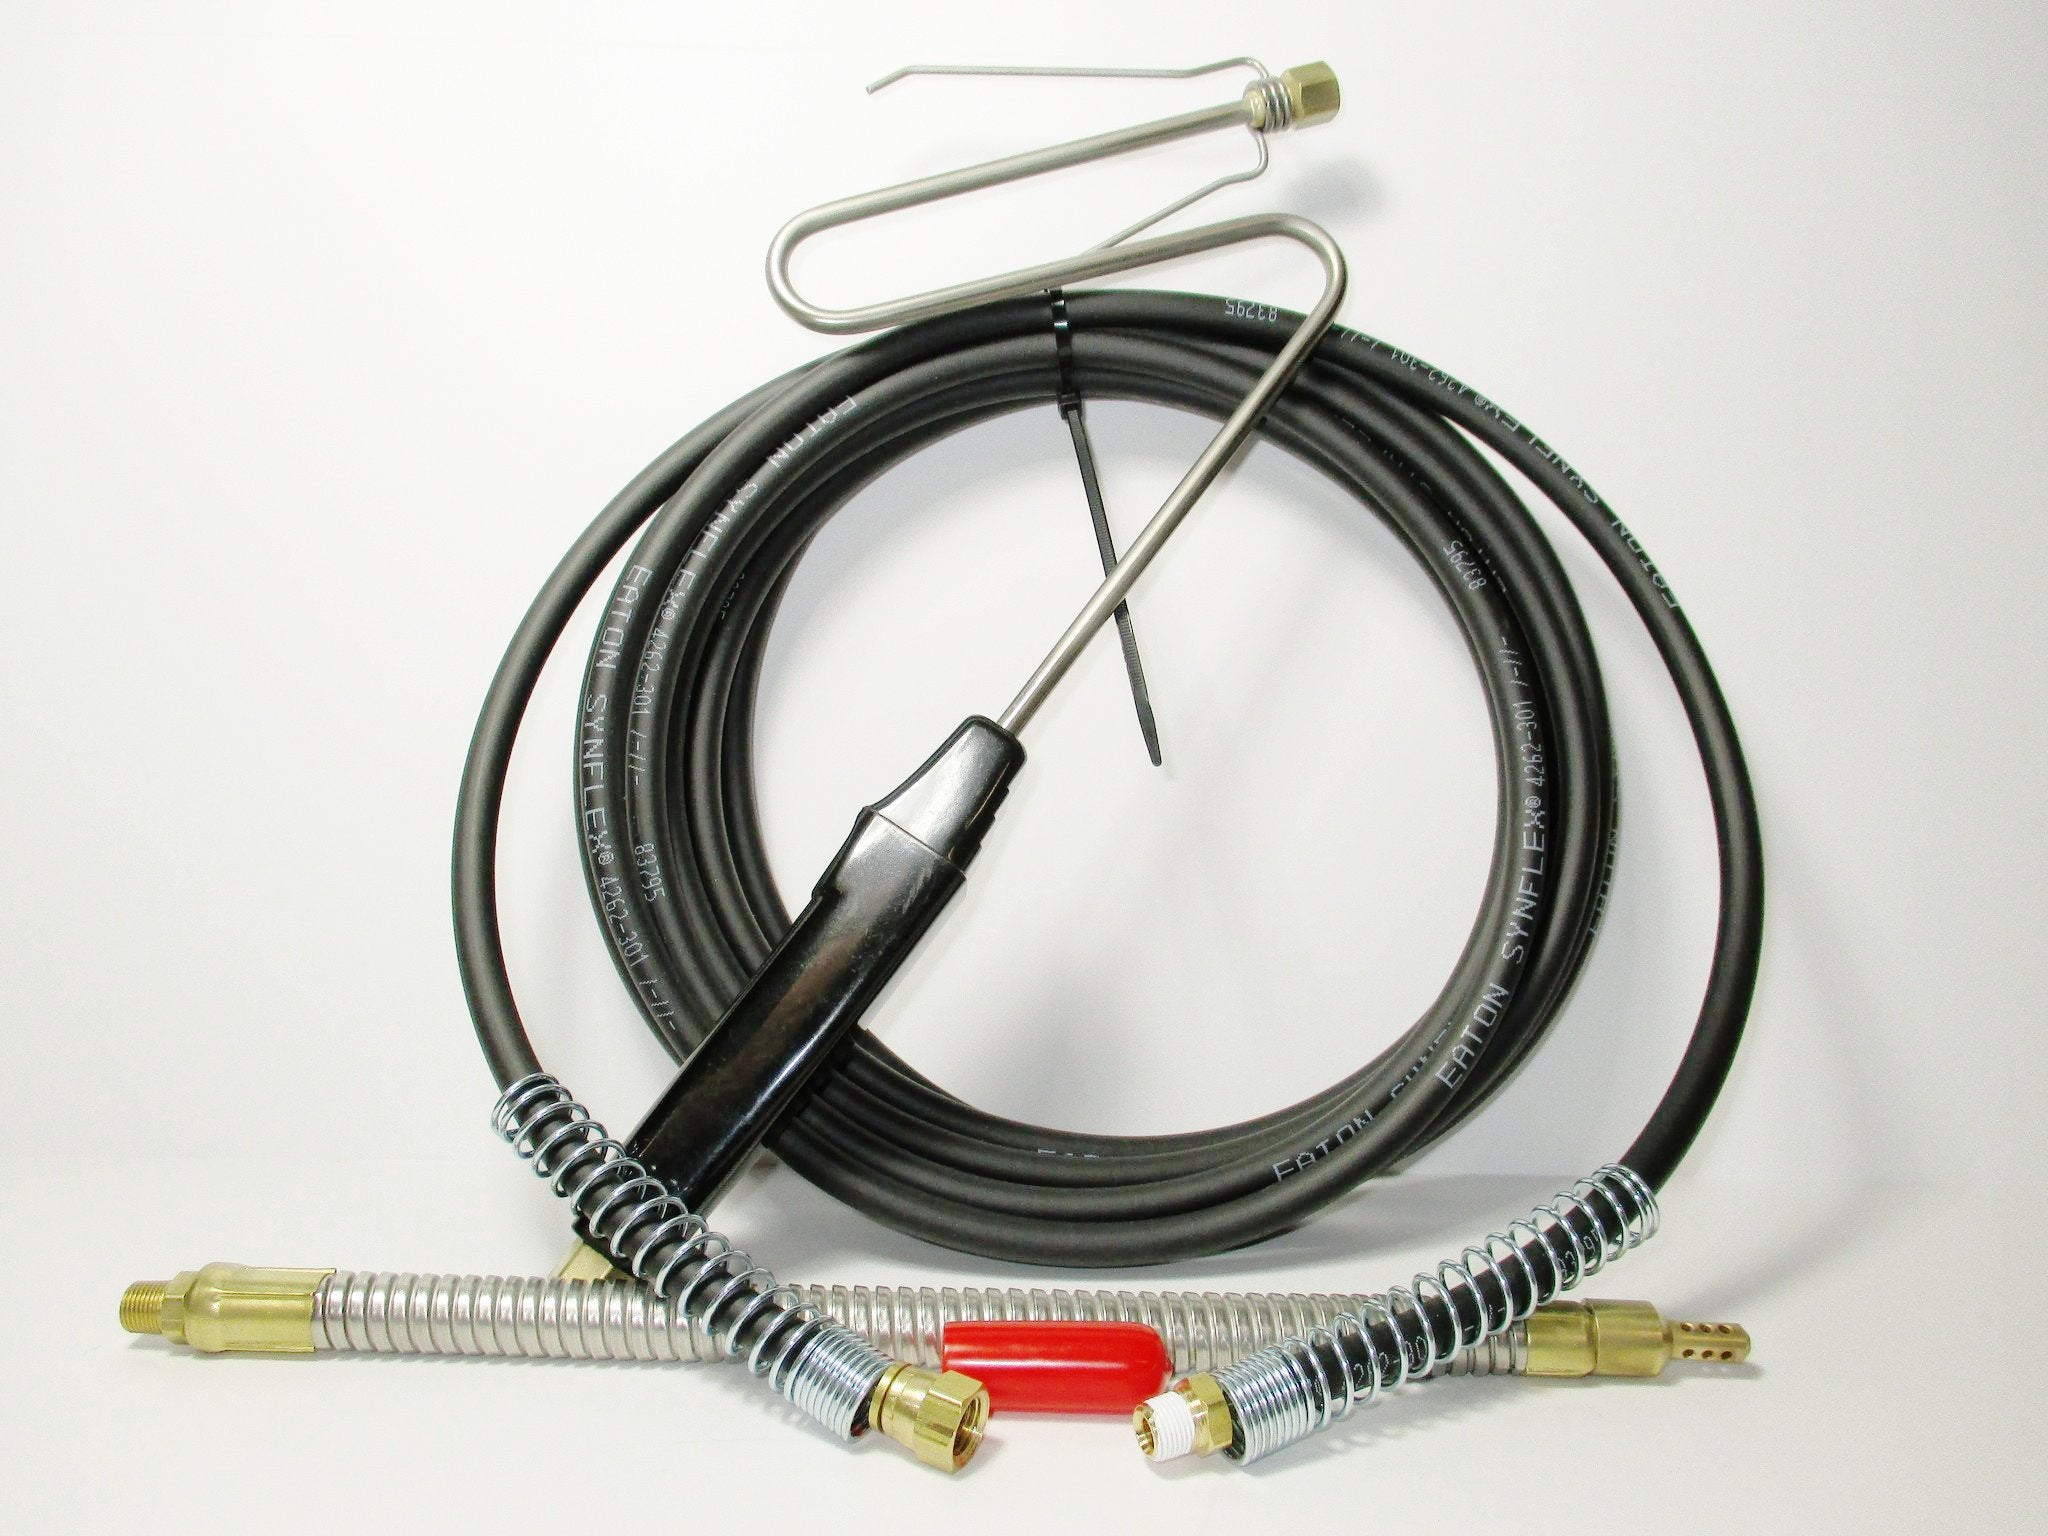 GAS ANALYZER PROBE AND HOSE, P.N. PHA-4X2